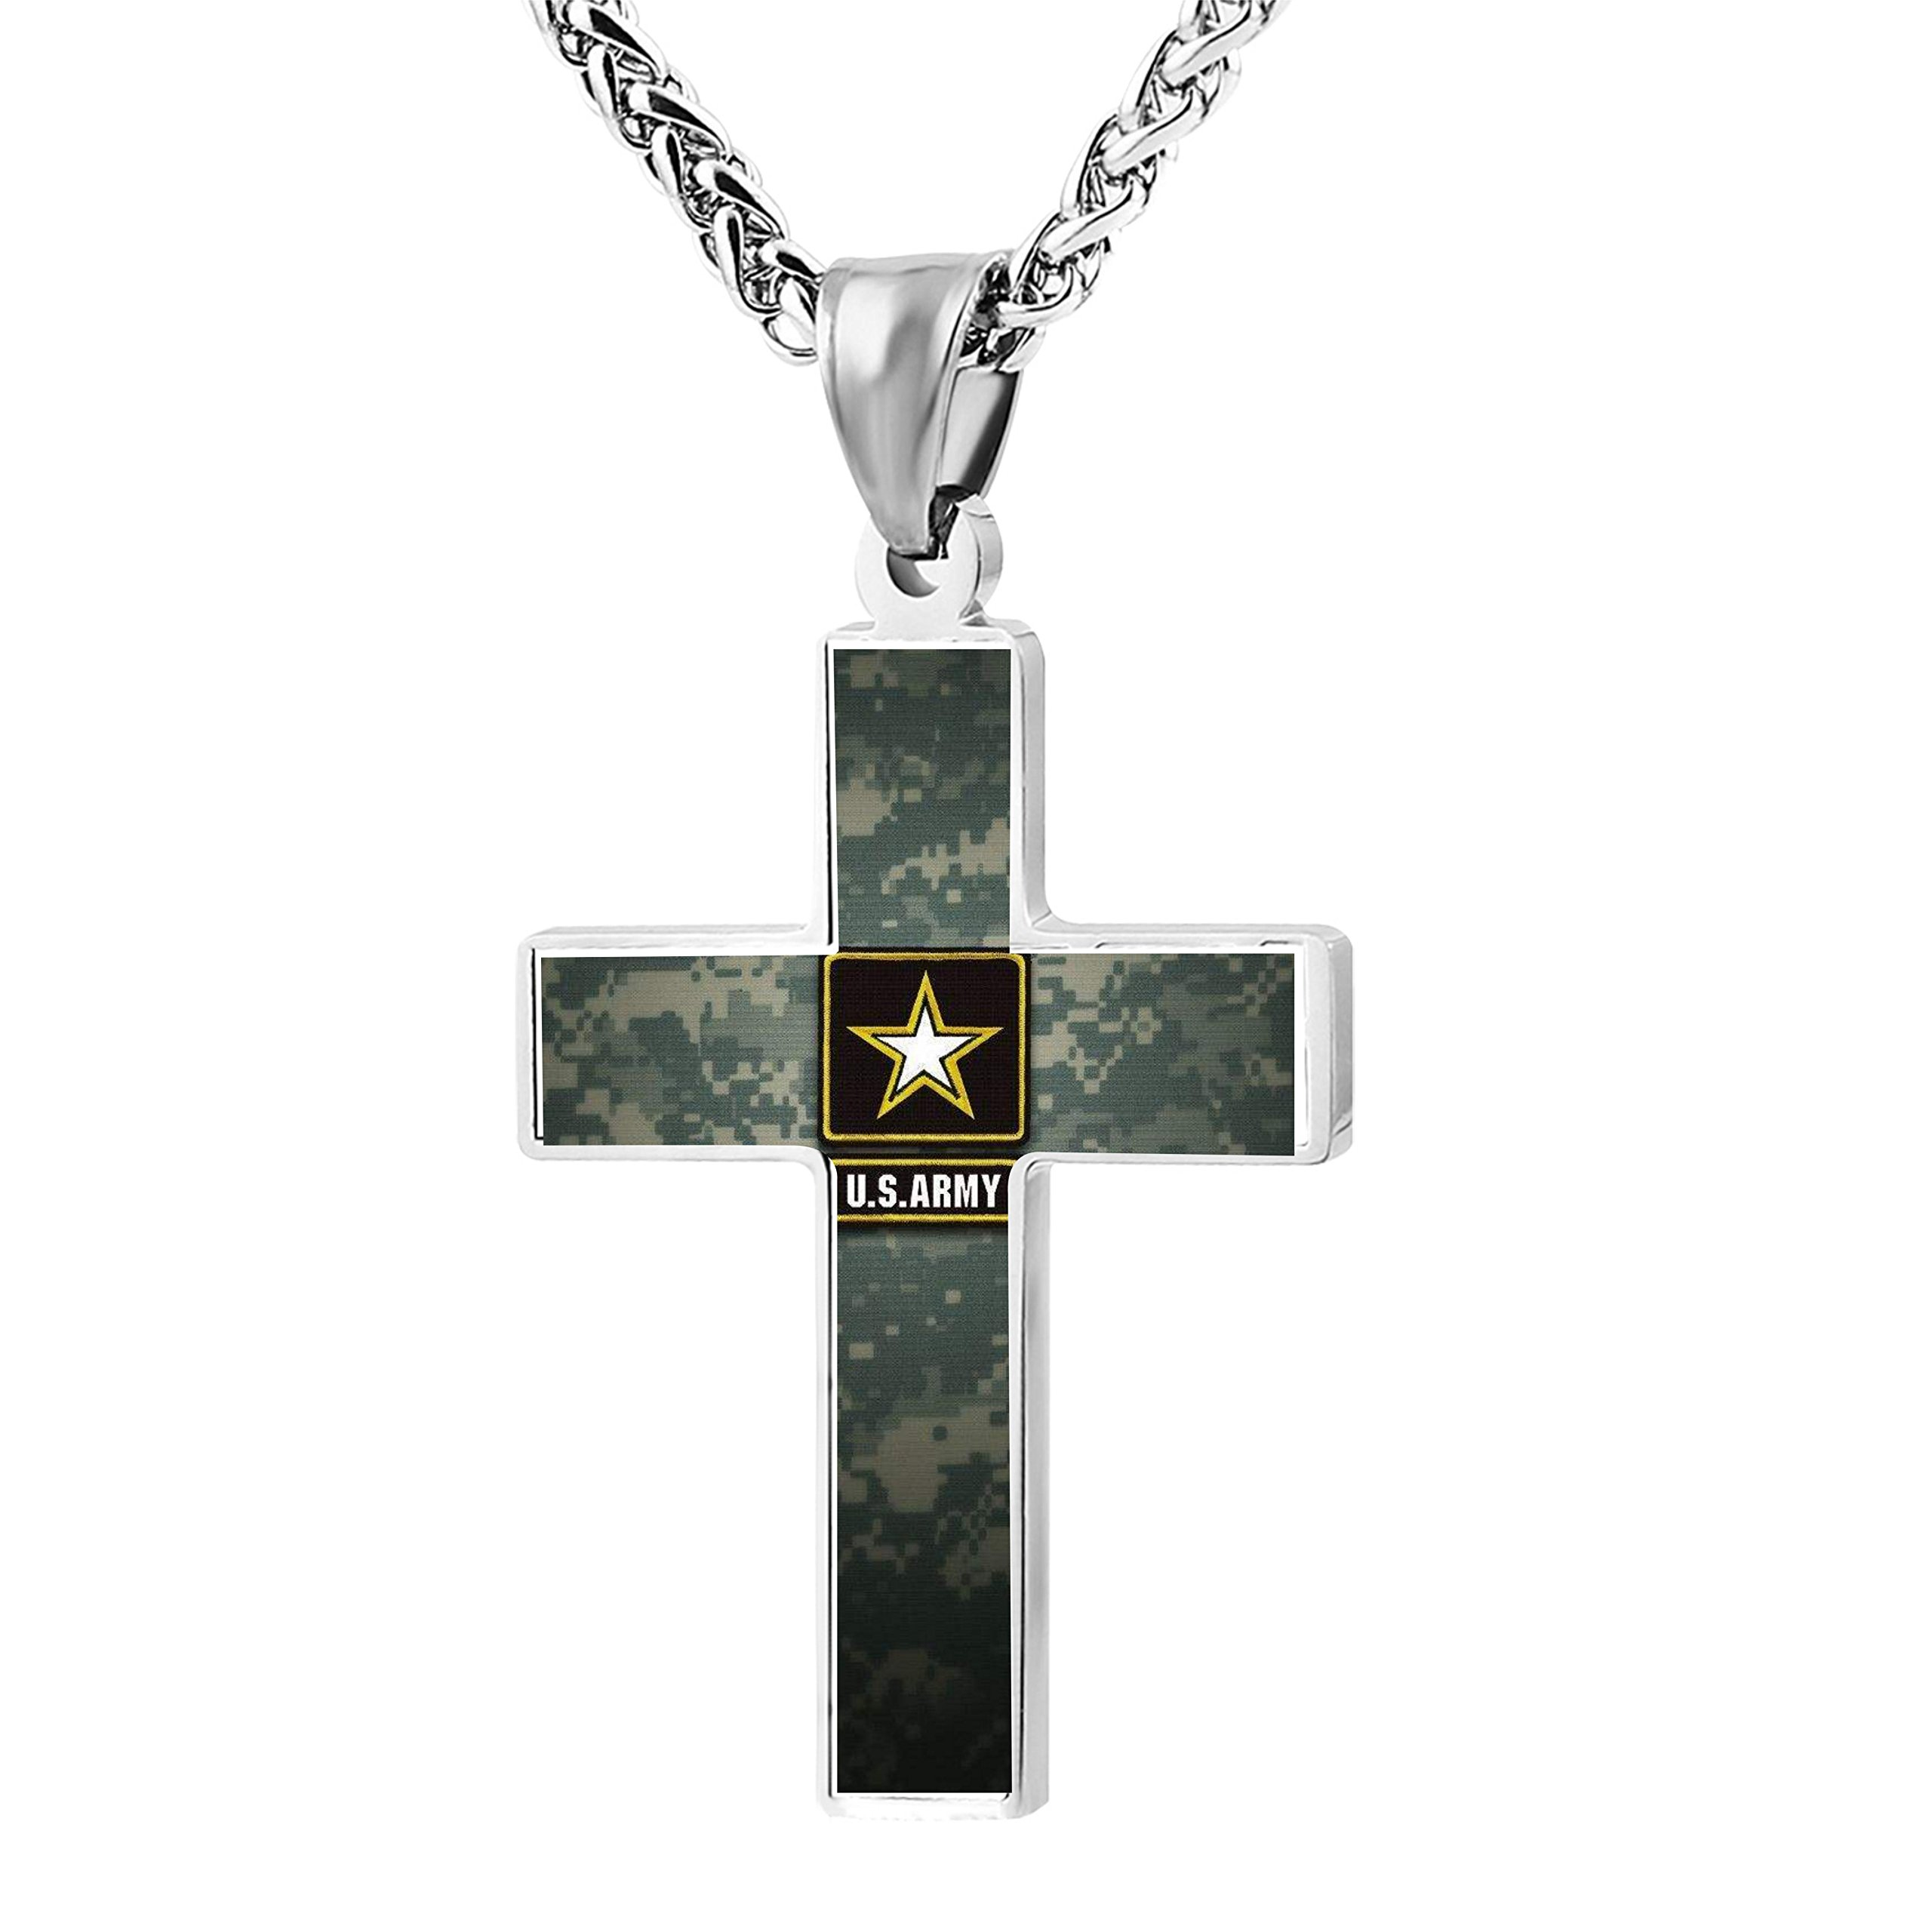 Patriotic Cross Army Medal Religious Lord's Prayer Jewelry Pendant Necklace